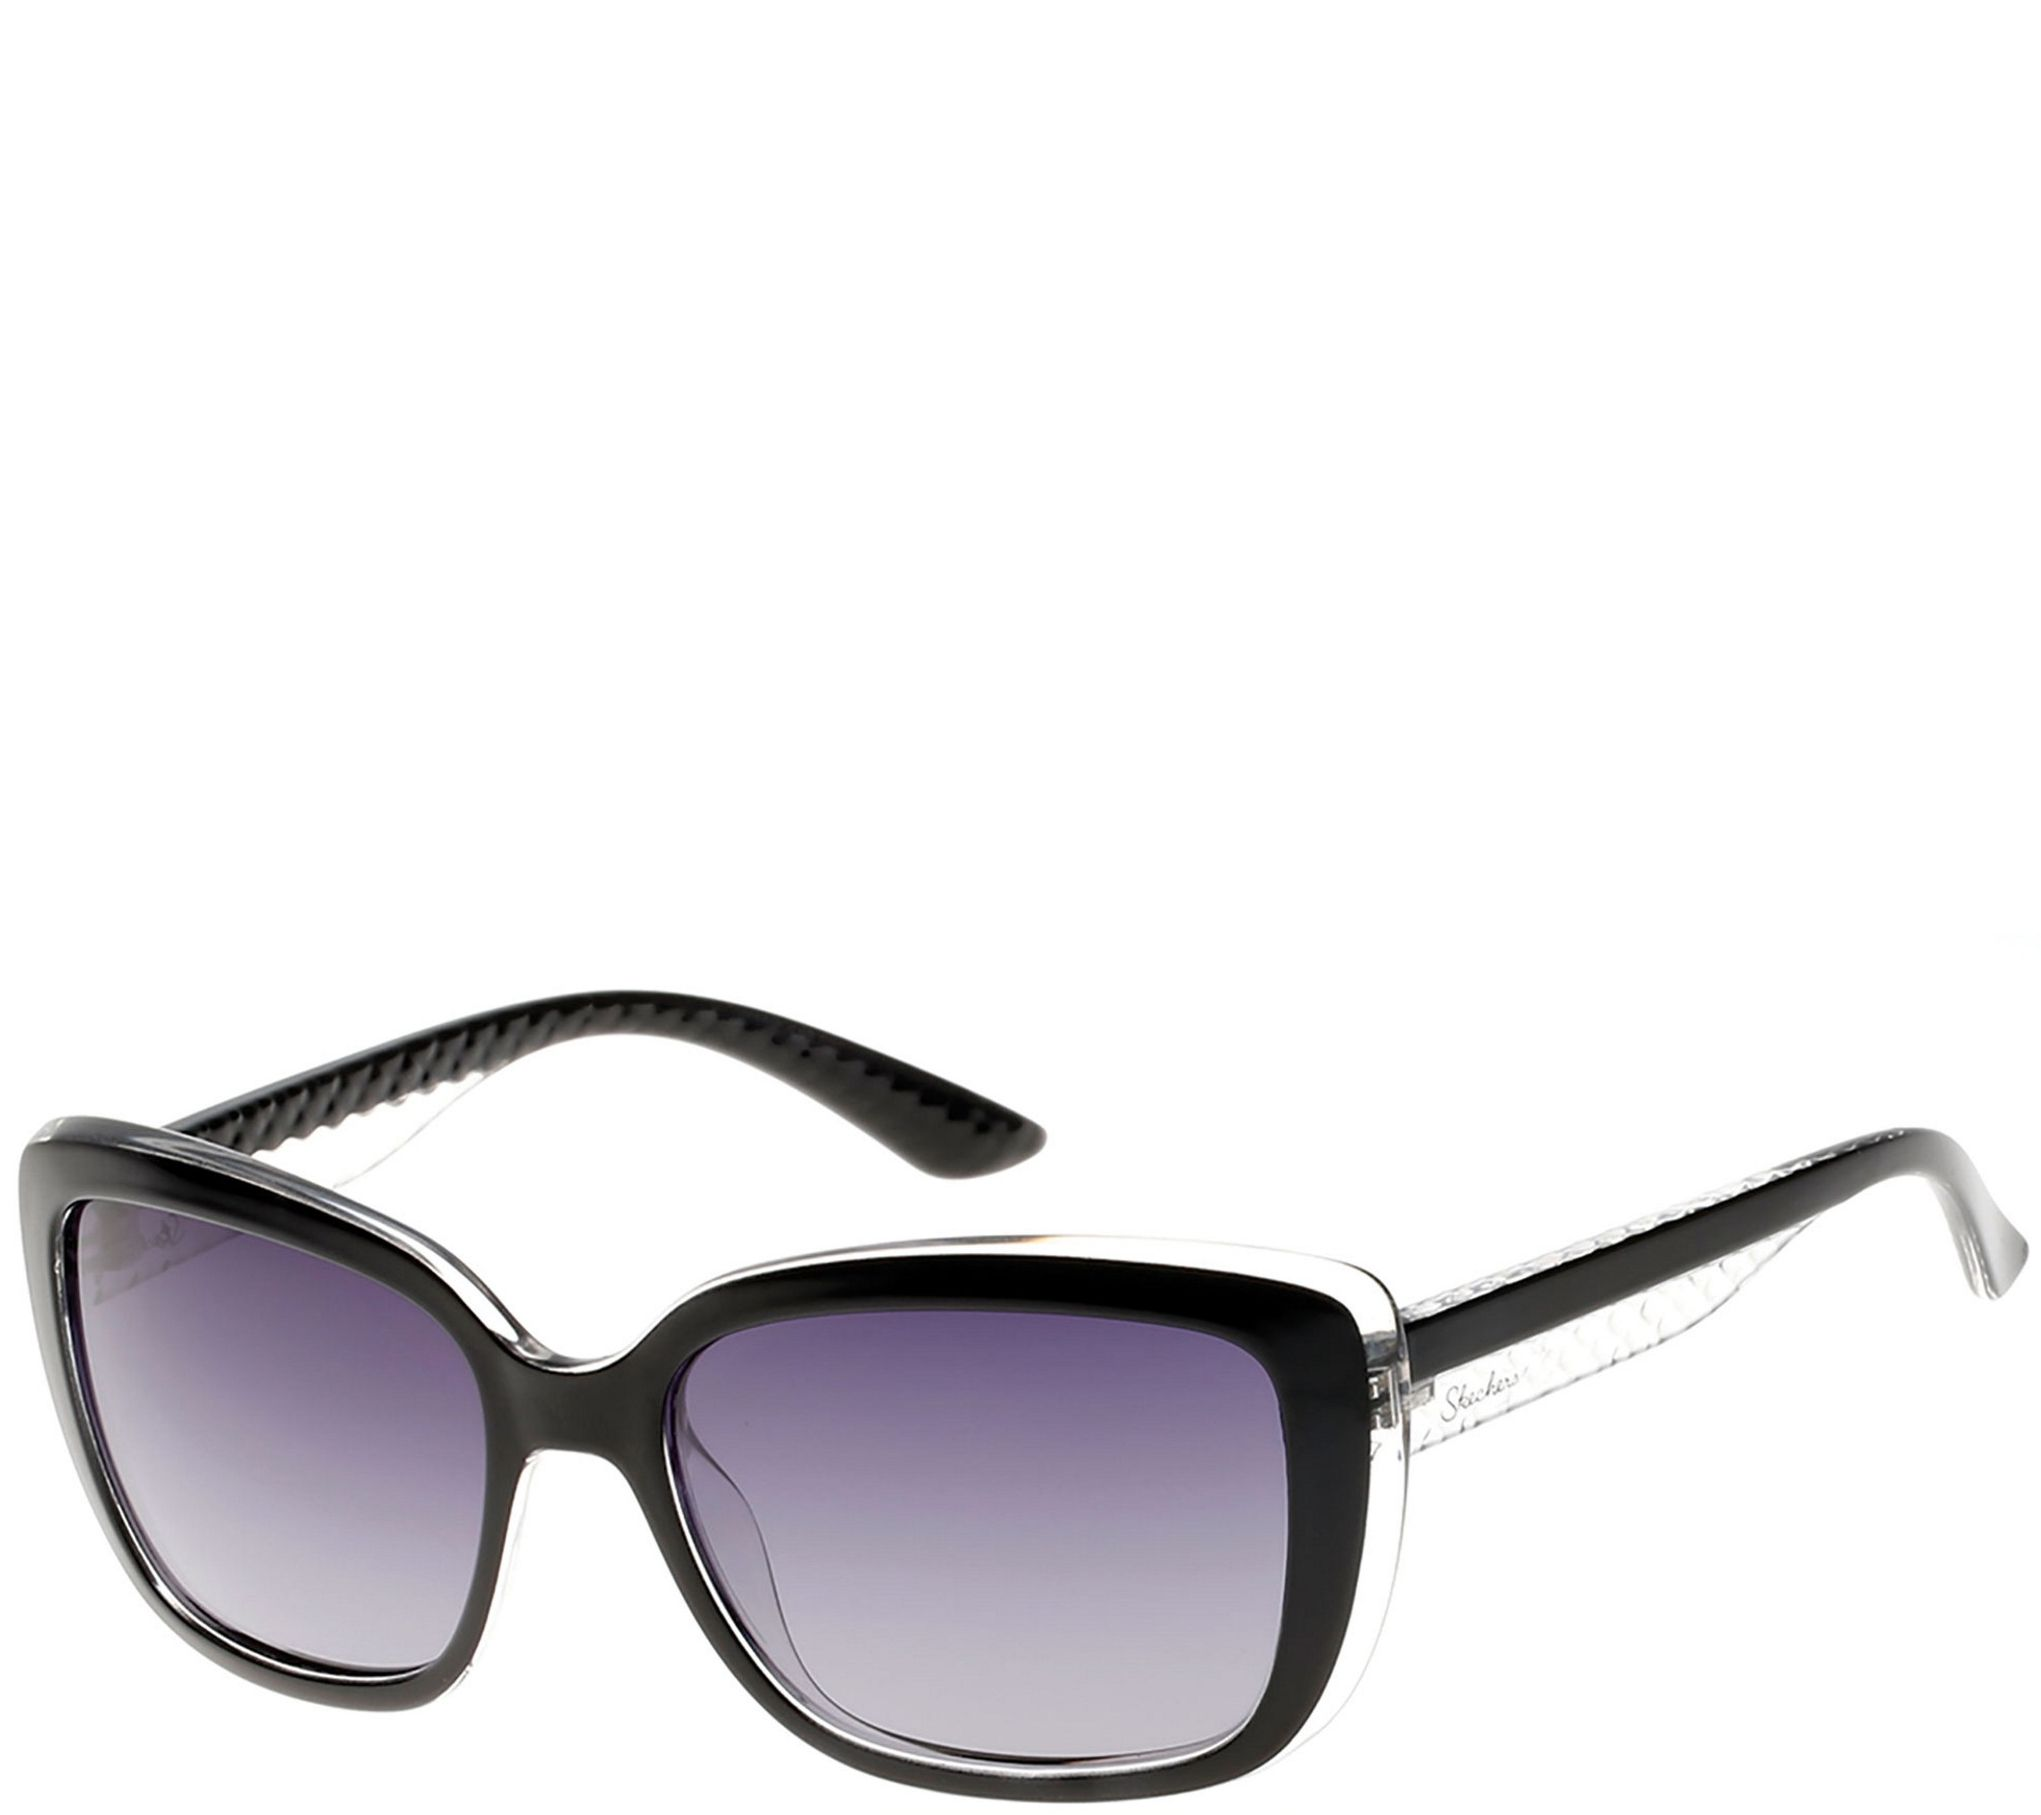 Skechers Women\'s Polarized Sunglasses - Black - Page 1 — QVC.com